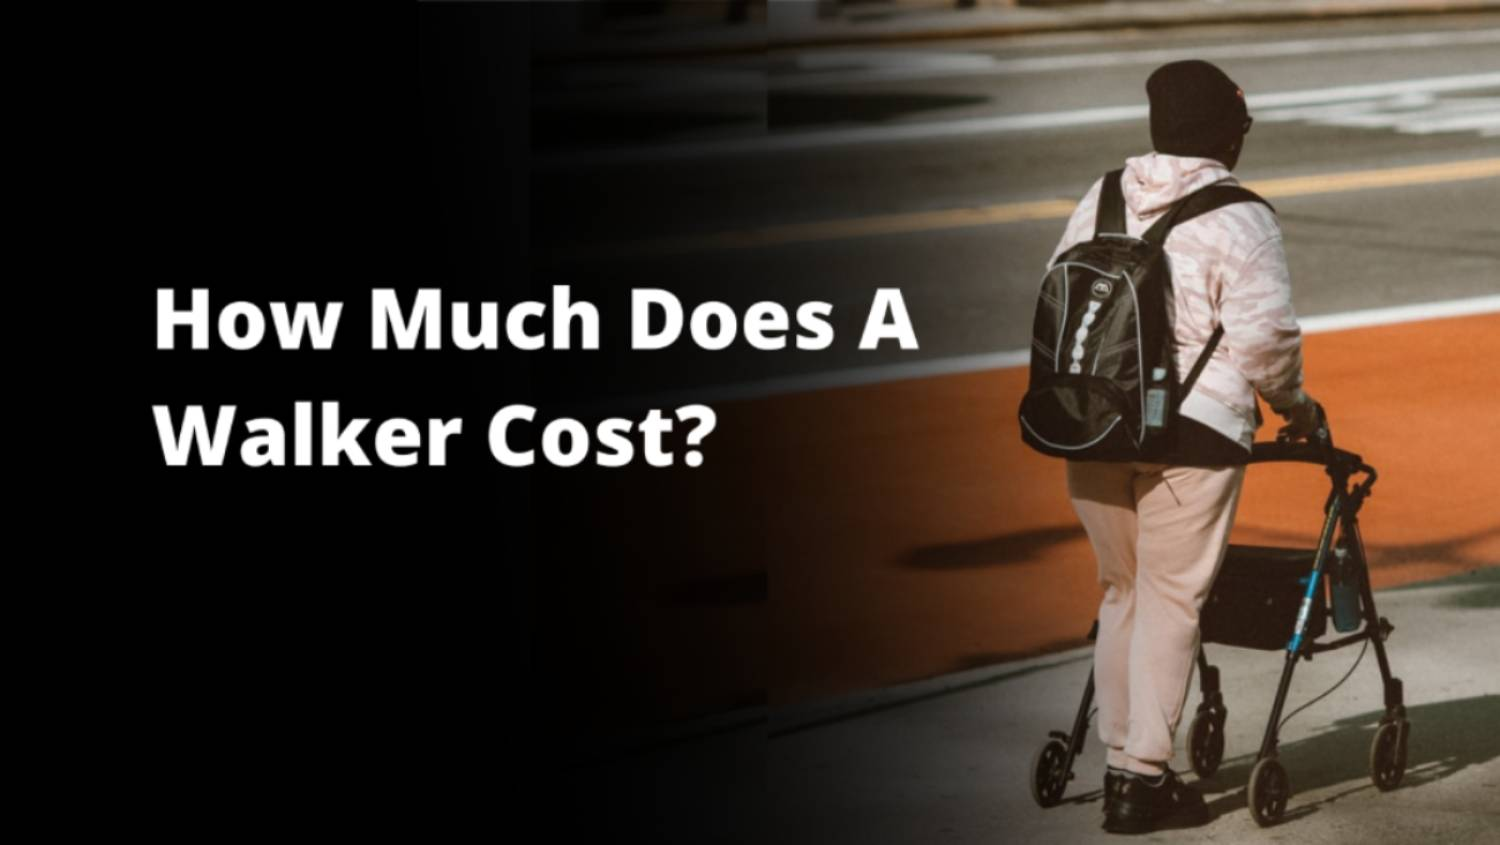 How Much Does a walker cost?